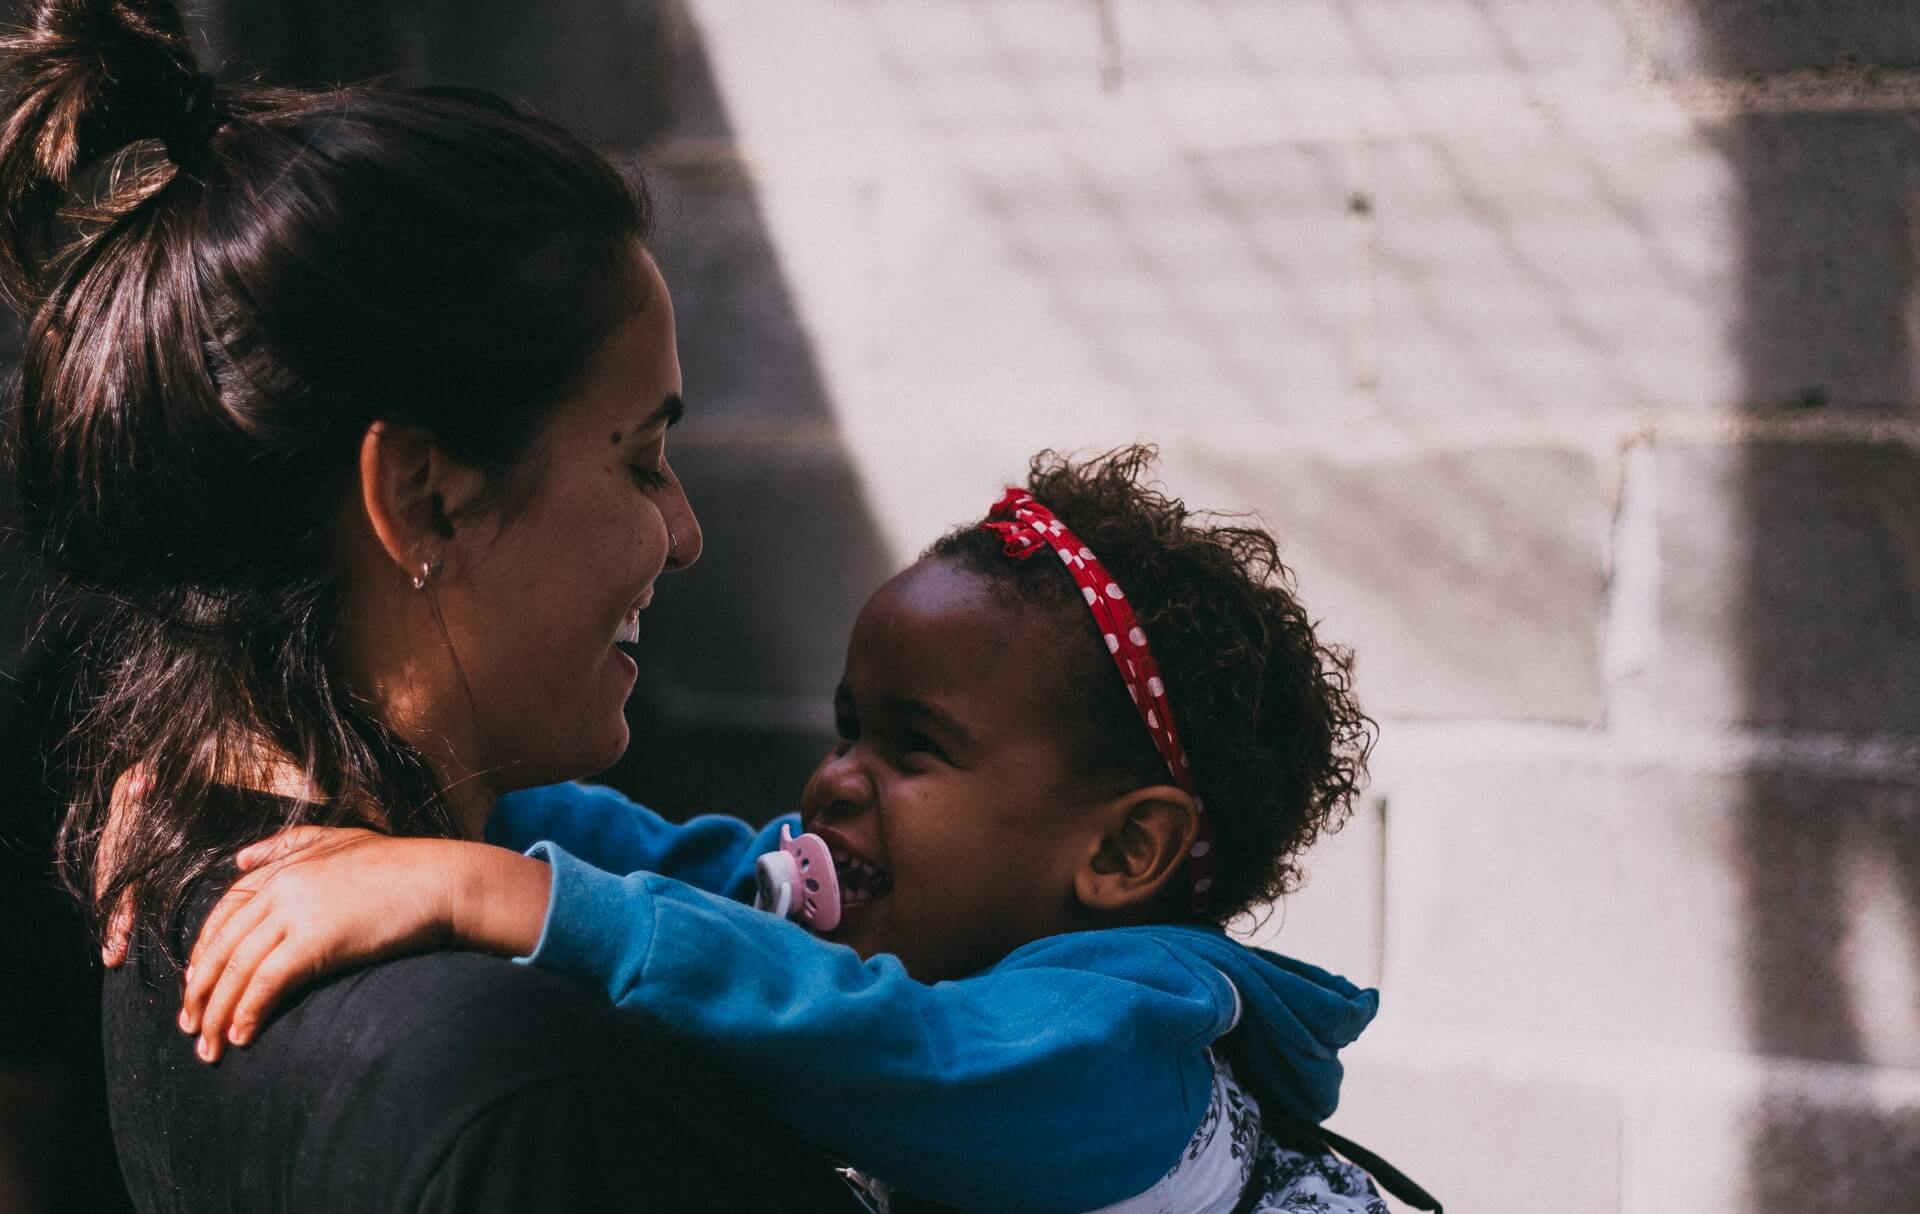 Women and young girl showing affectionate care